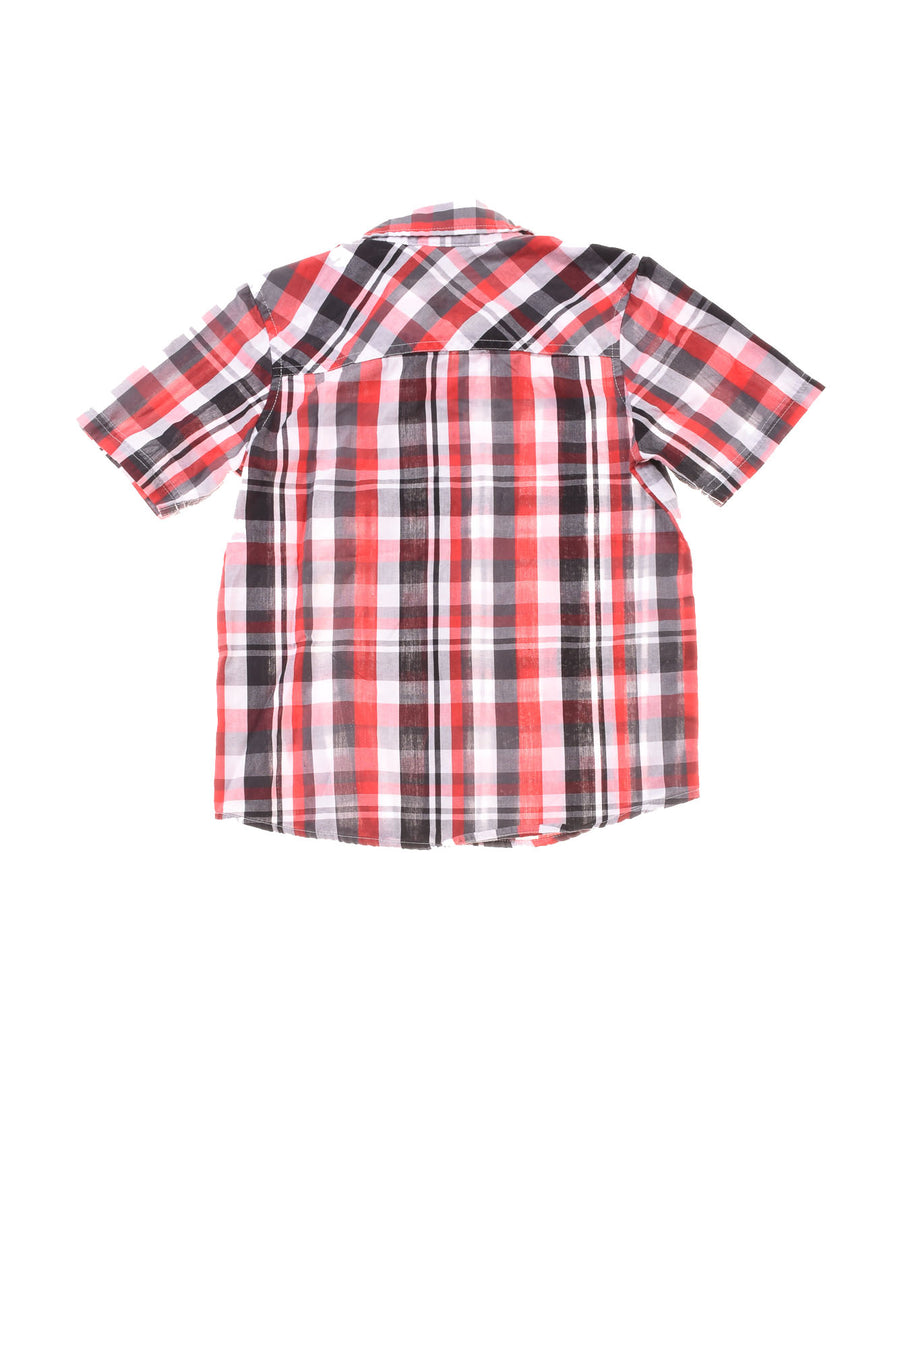 USED Tony Hawk Boy's Shirt 5/6 Black, White, & Red